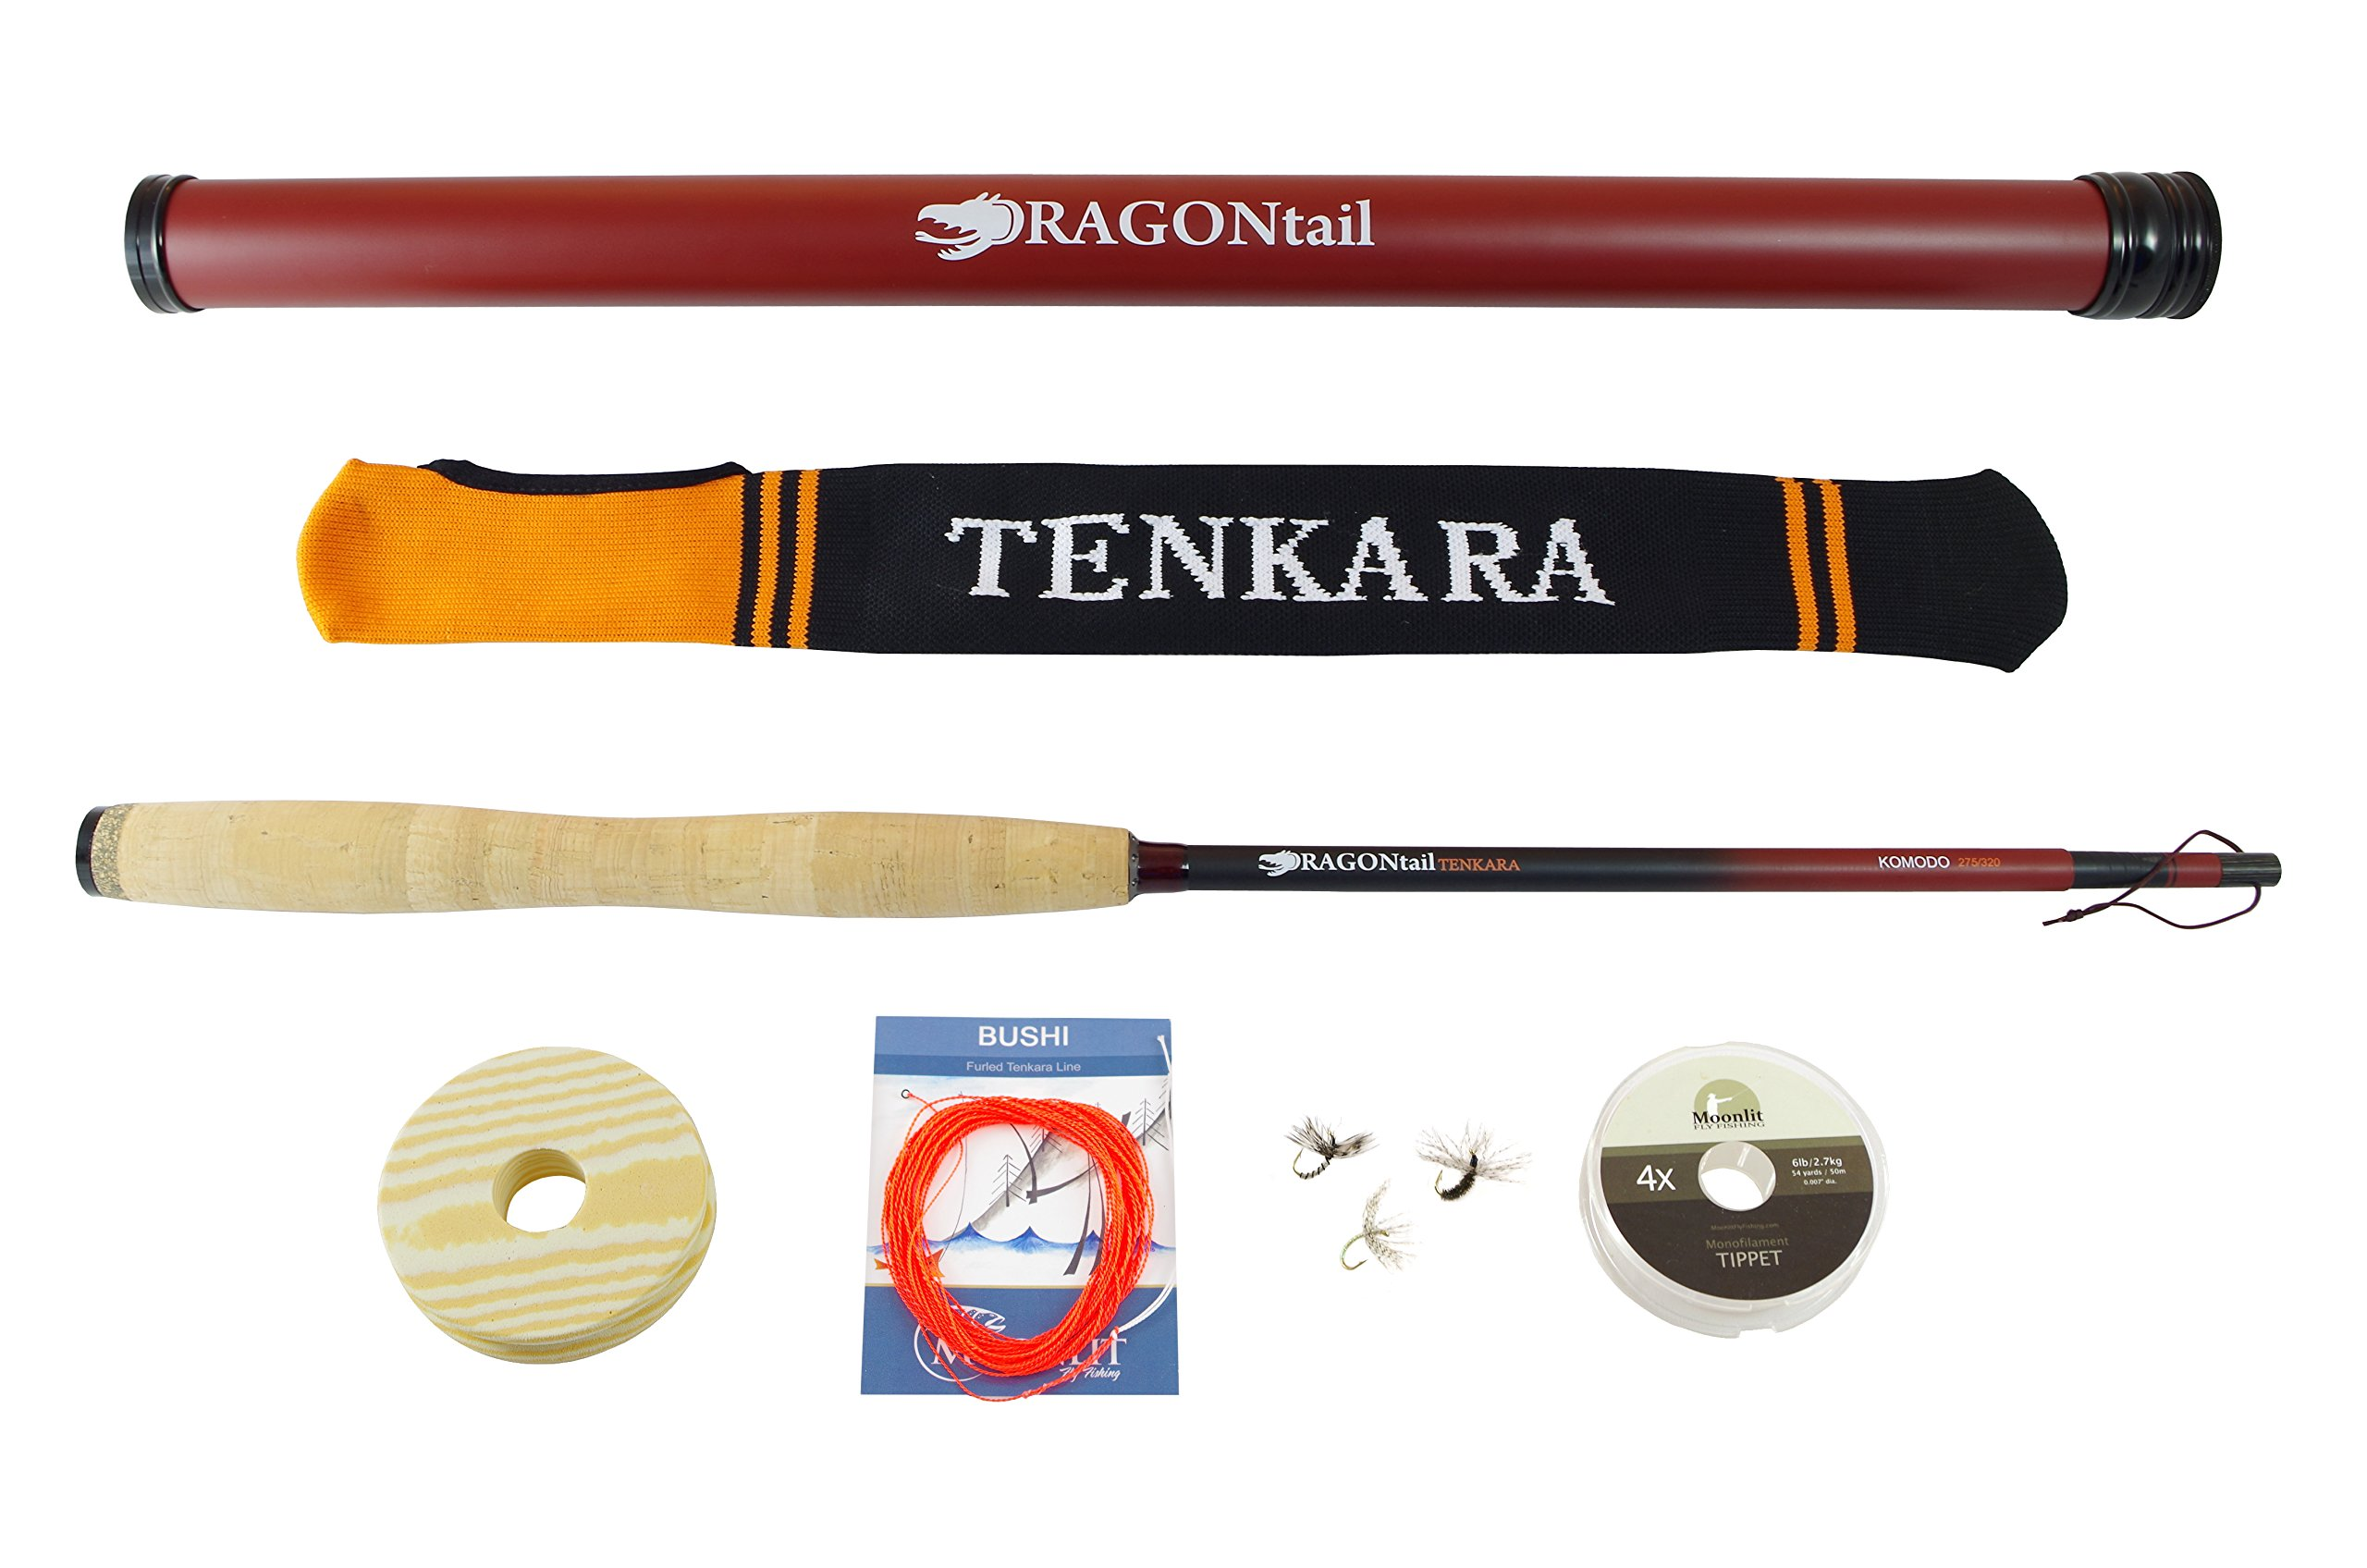 DRAGONtail Tenkara KOMODO Zoom 10.5' / 9' Fly Fishing Rod and Complete Starter Kit by DRAGONtail Tenkara